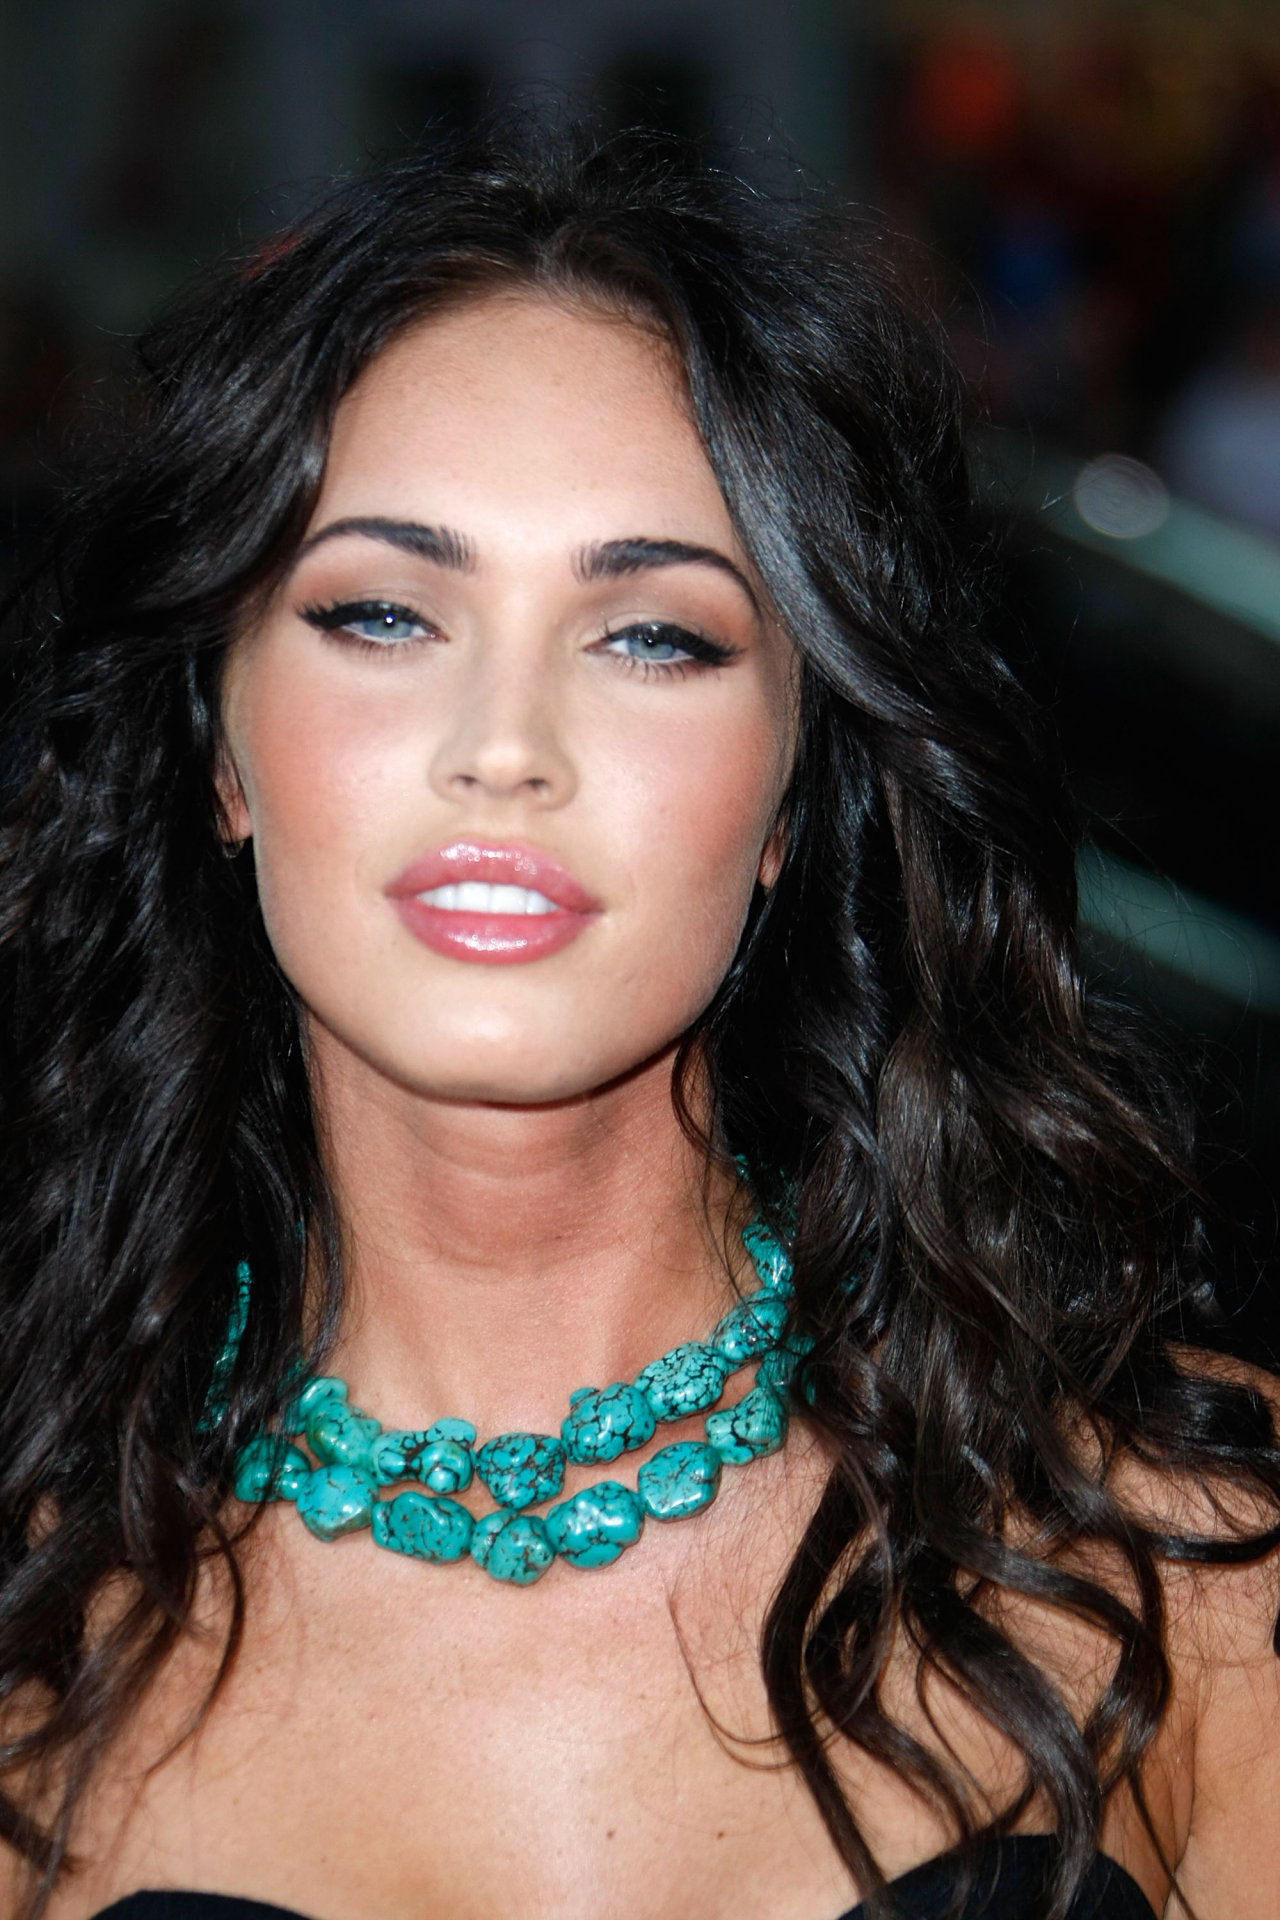 Megan Fox leaked wallpapers